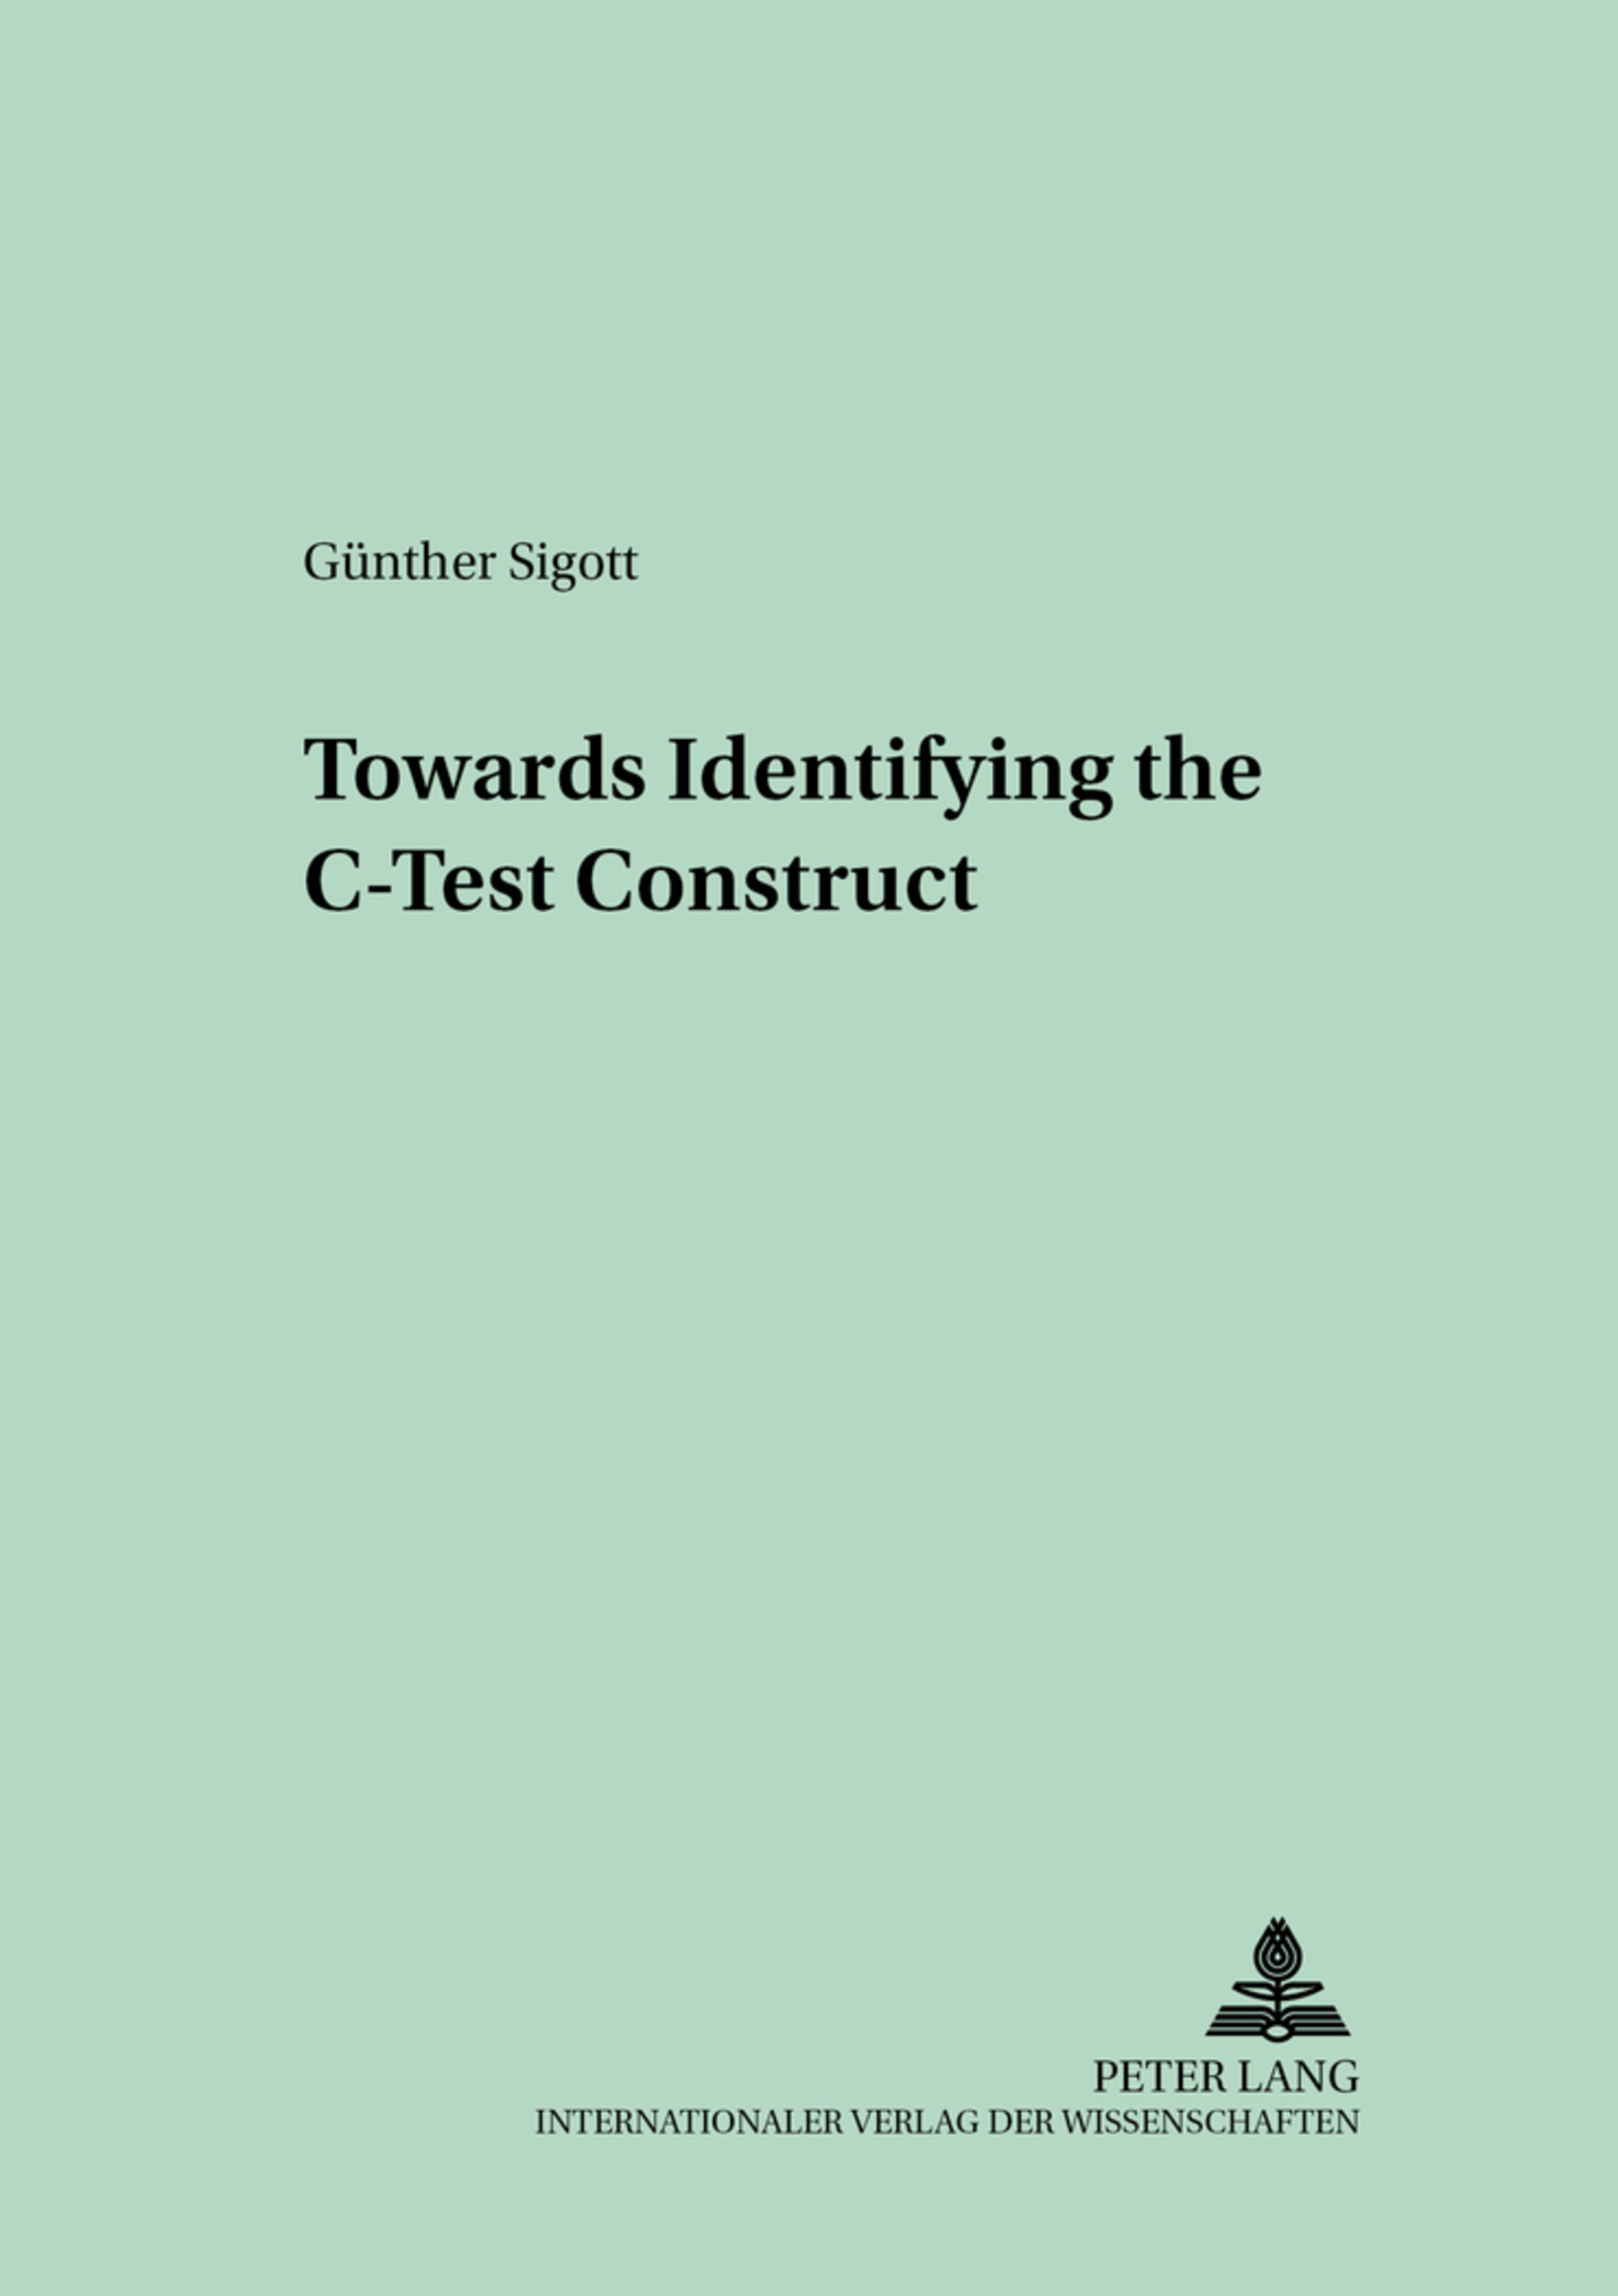 Title: Towards Identifying the C-Test Construct